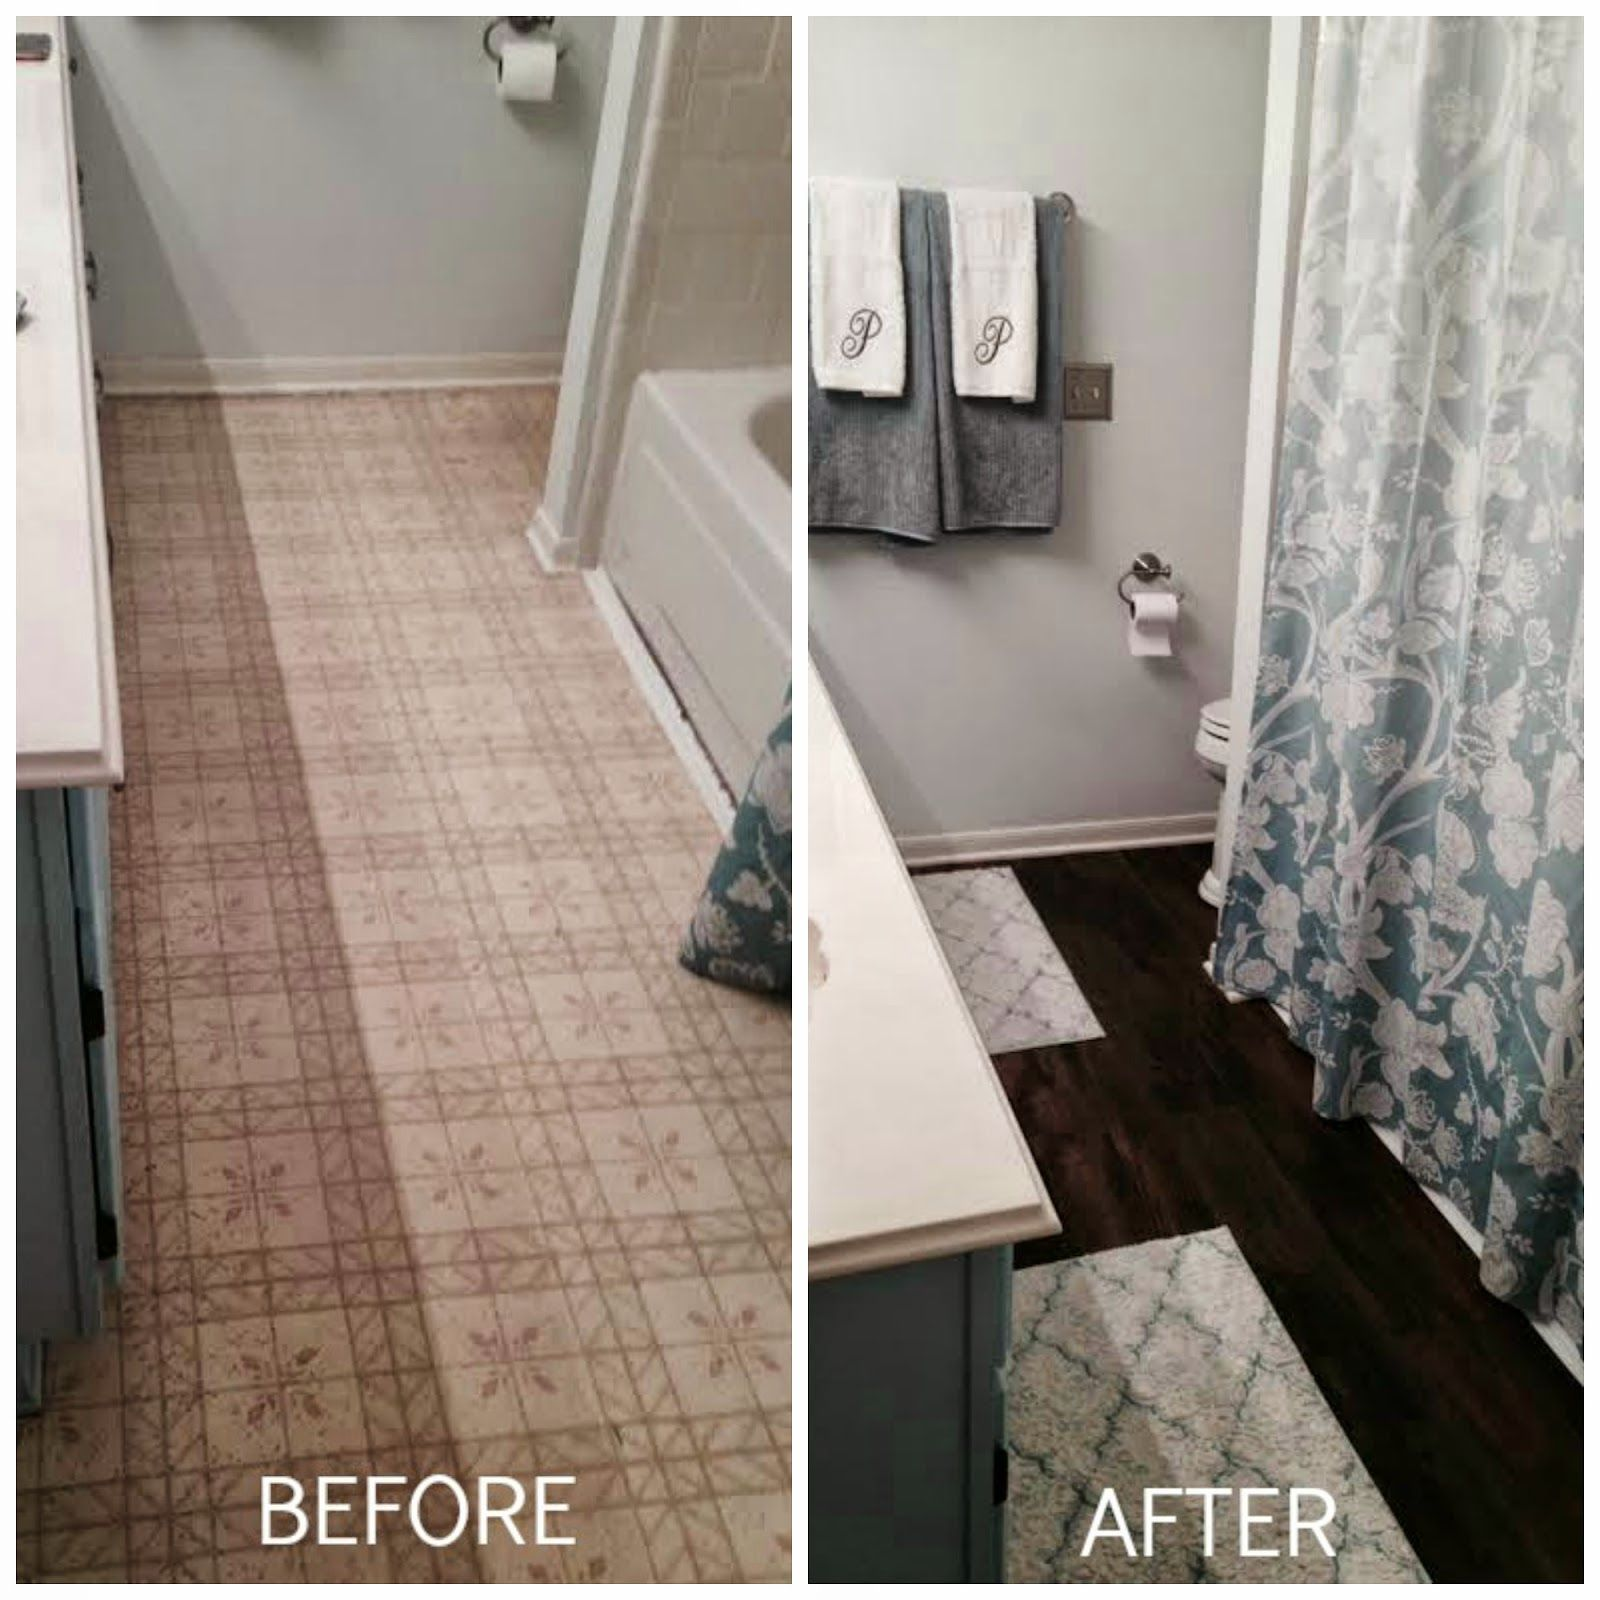 L Stick Tile Strikes Again In November I Shared With You How Transformed The Dated Linoleum